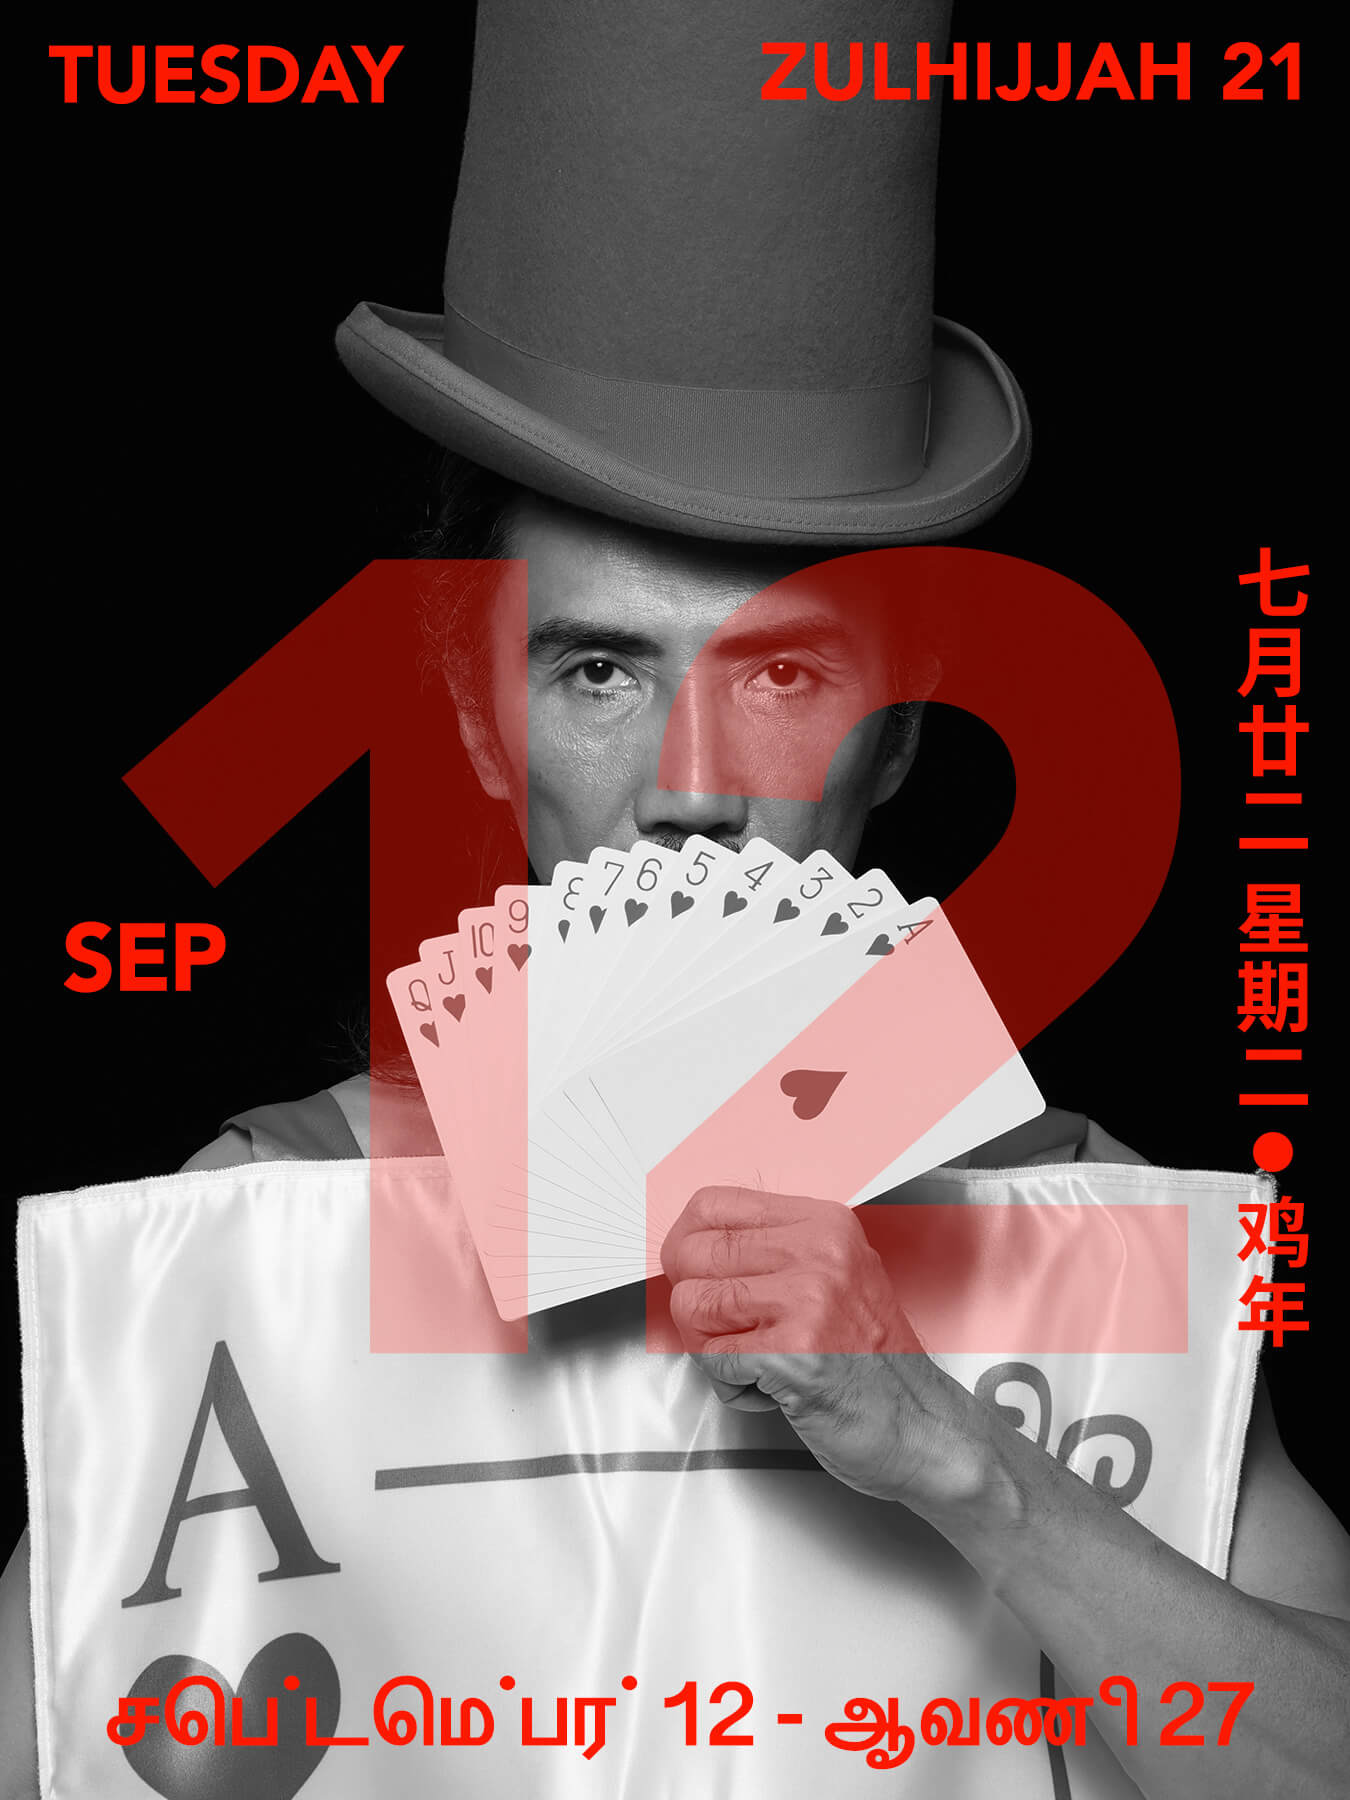 12 Sep 2017: Derong is wearing a red hat and Ace card, holding a spread of playing cards